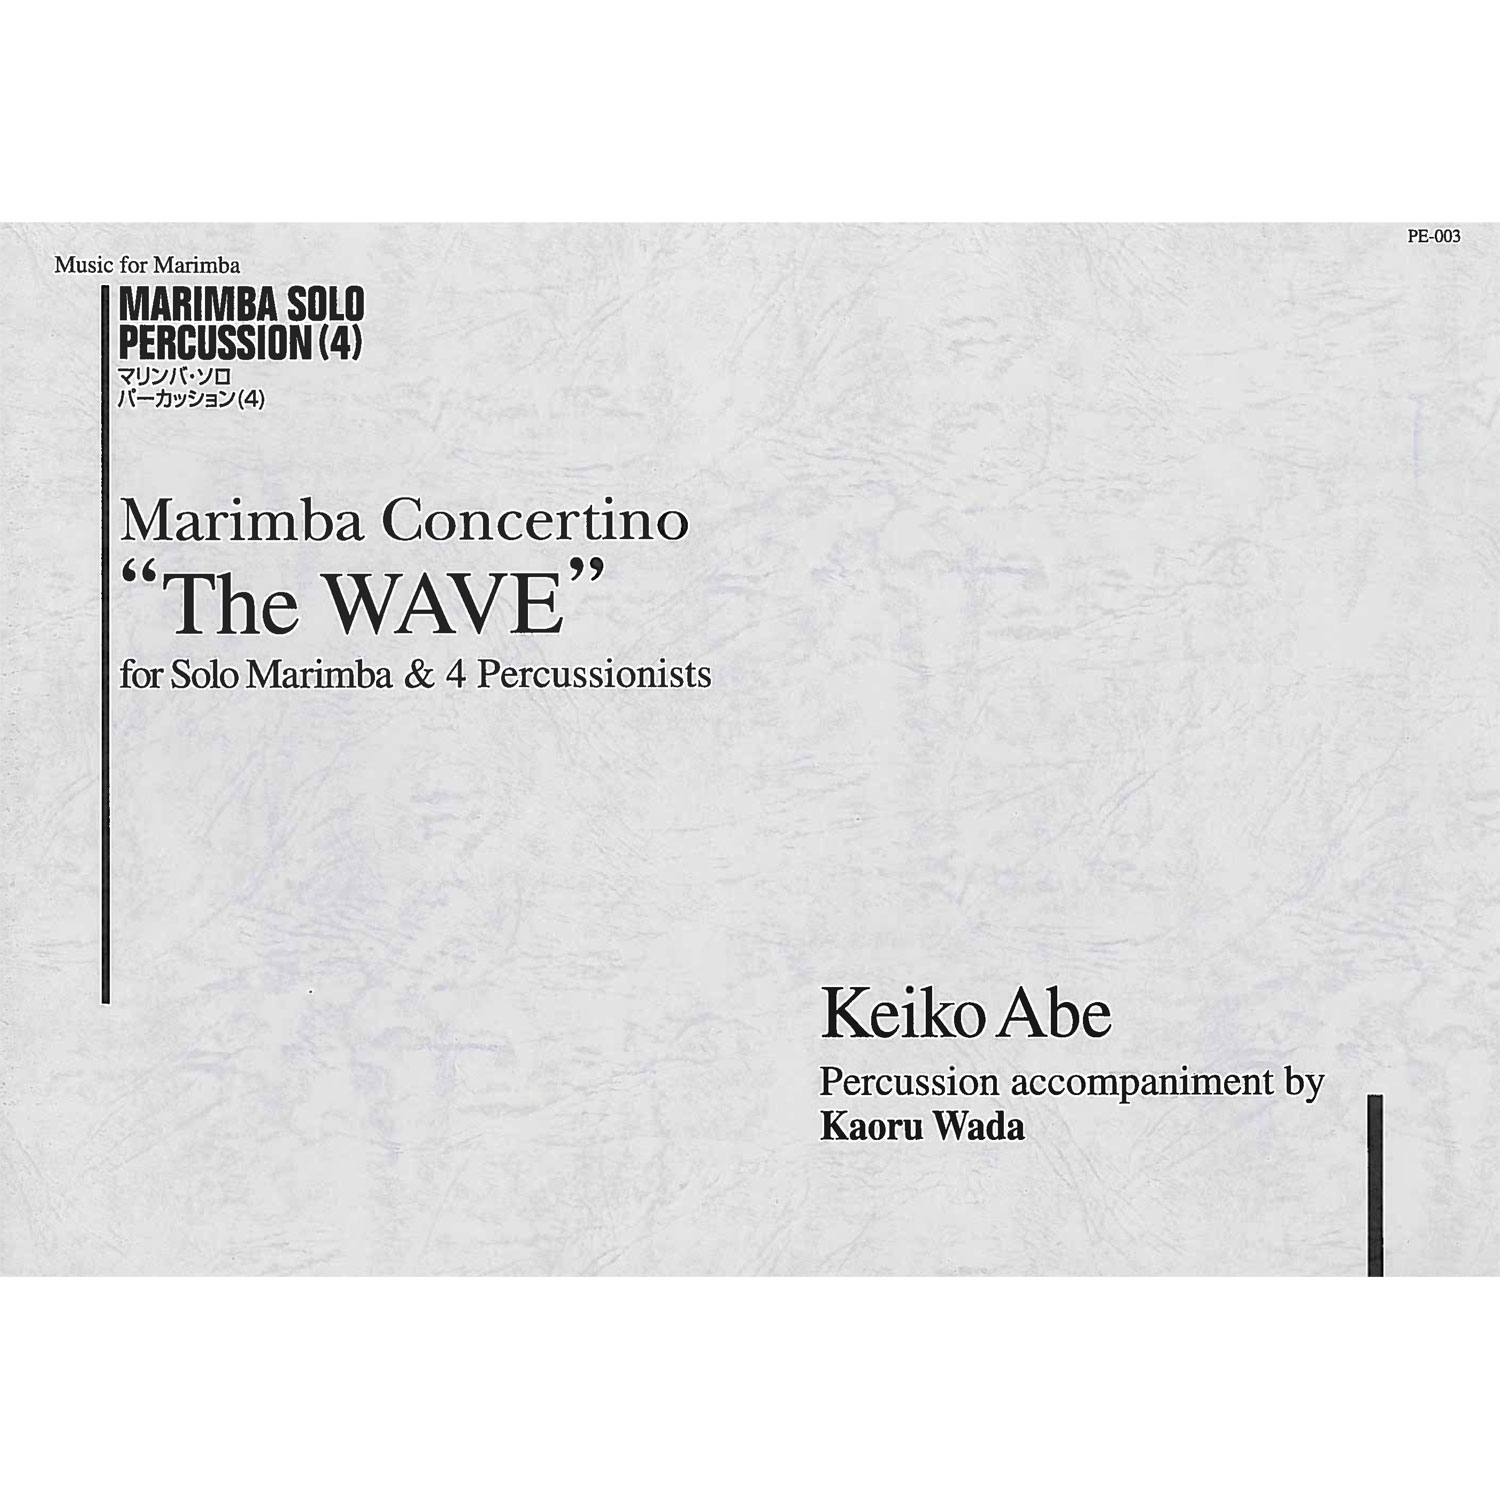 The Wave (Marimba Concertino) by Keiko Abe